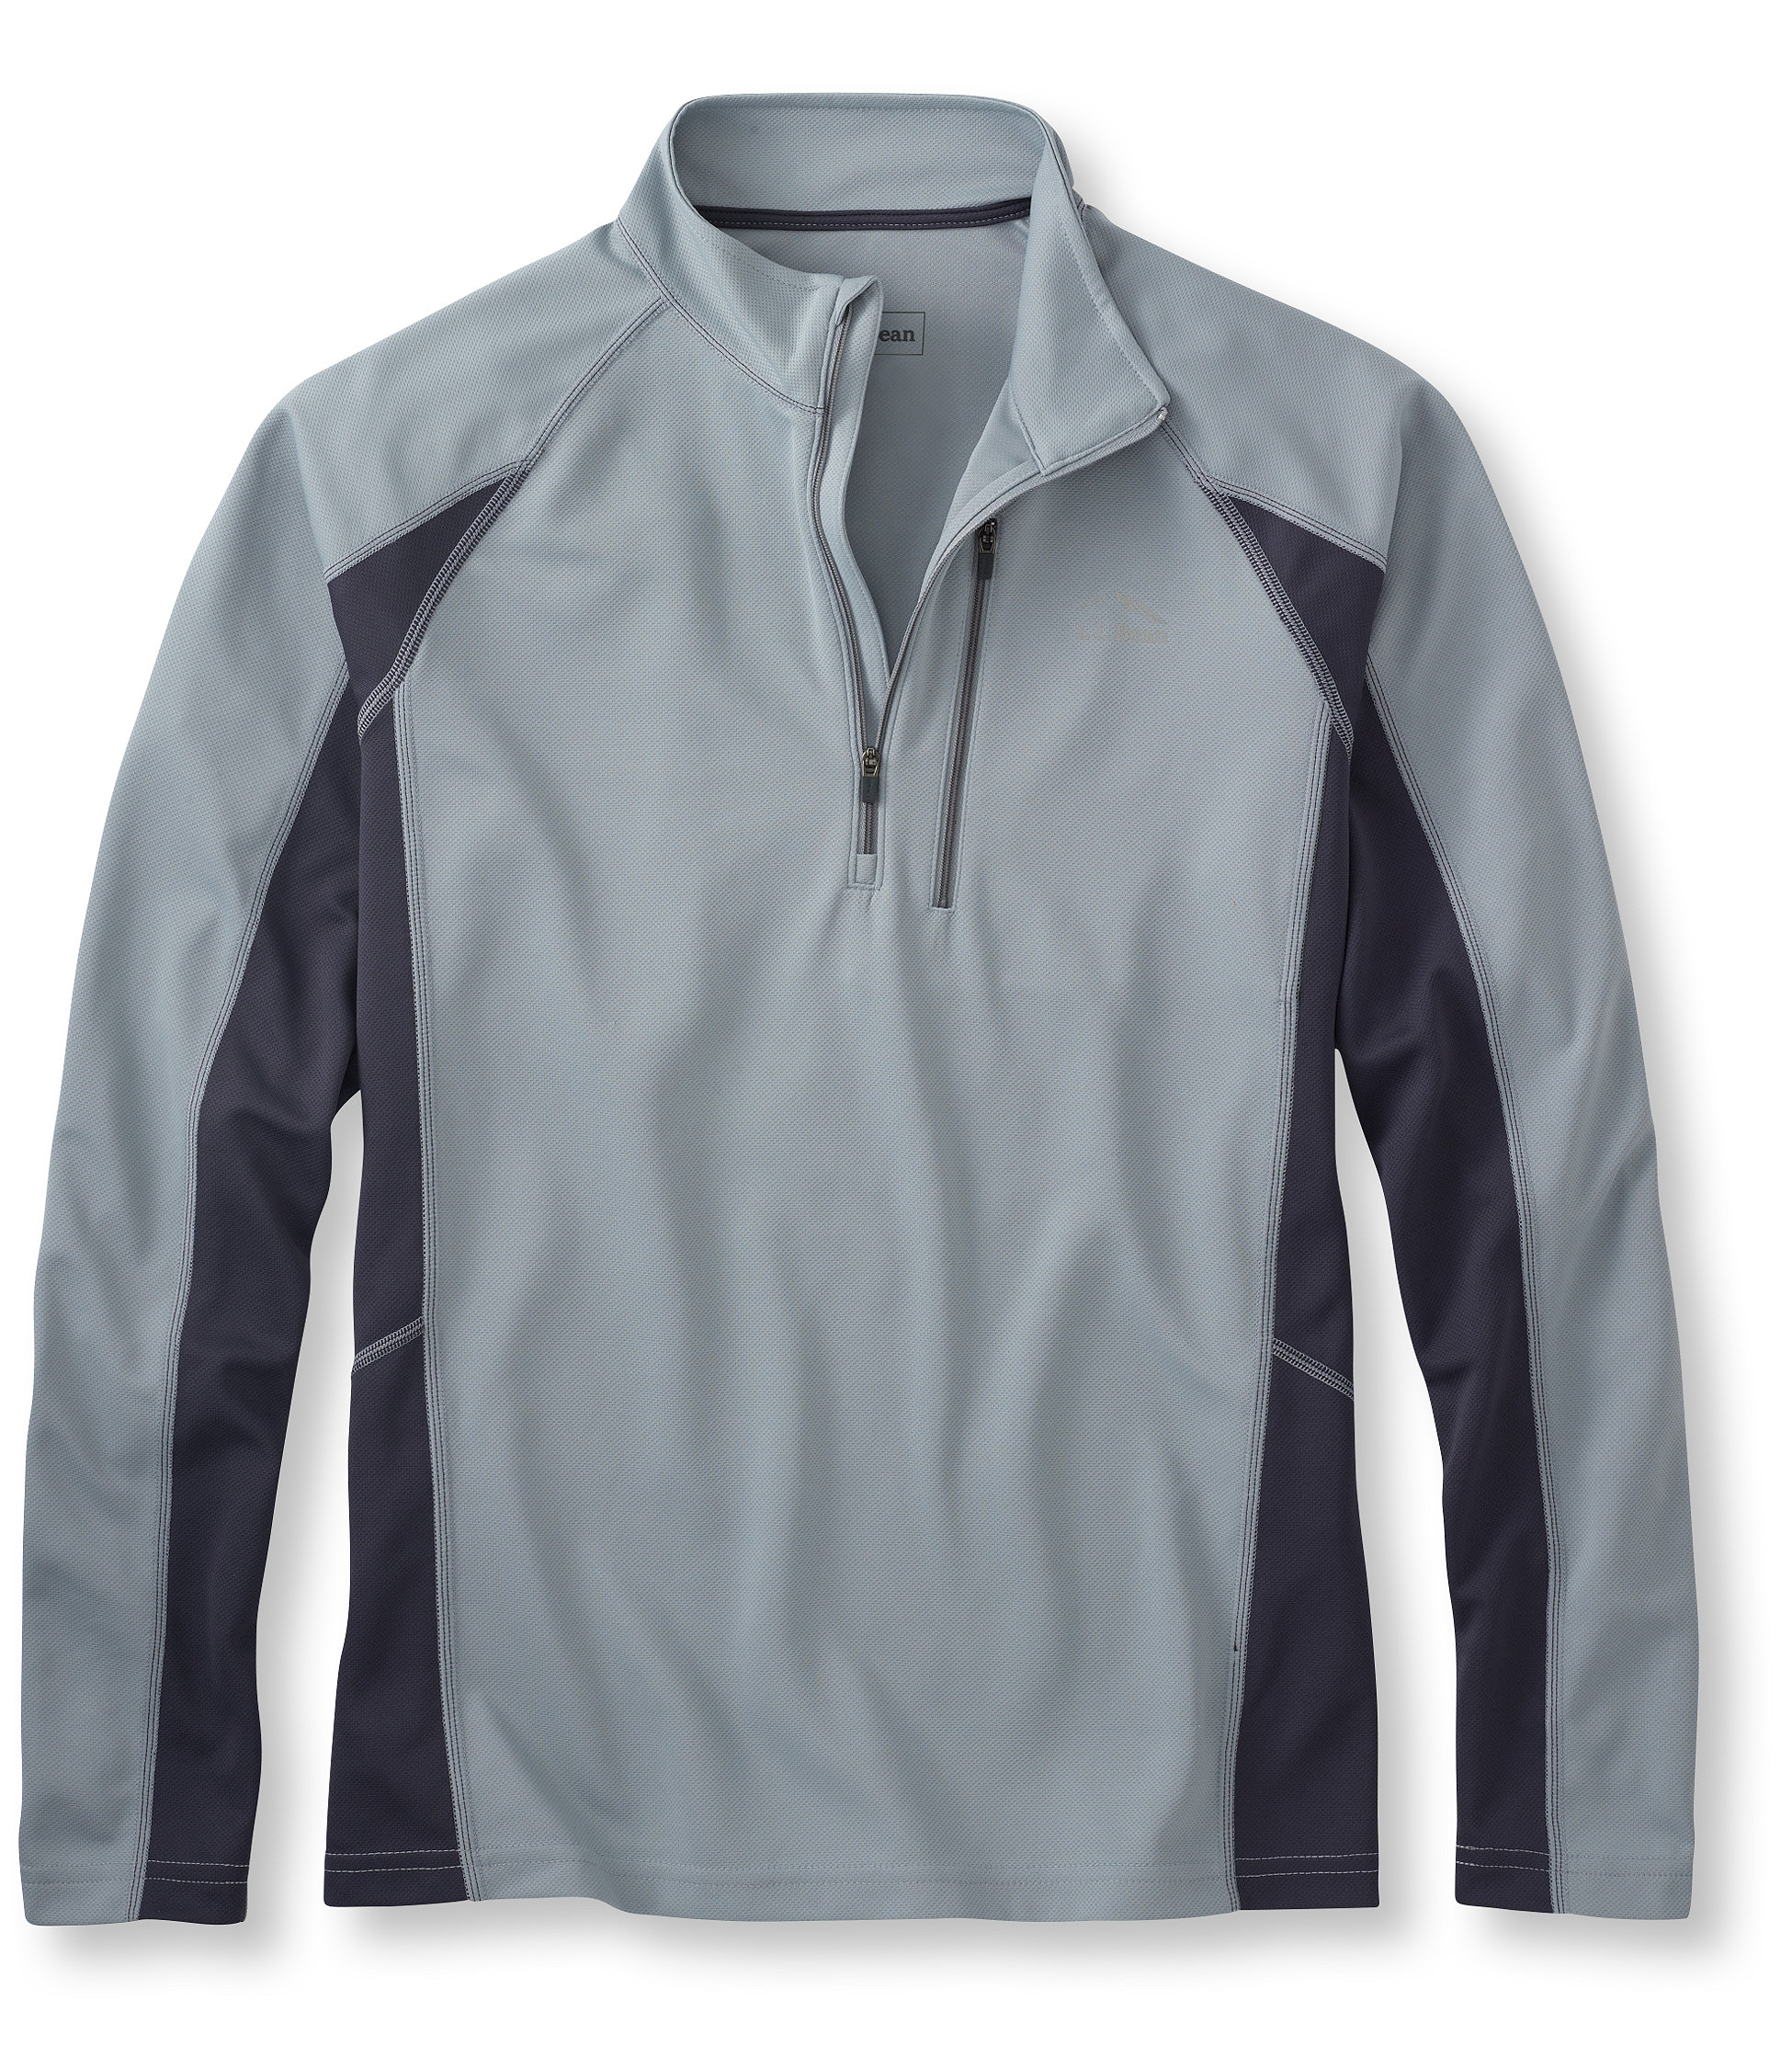 L.L.Bean Ridge Runner Shirt, Long-Sleeve Quarter-Zip